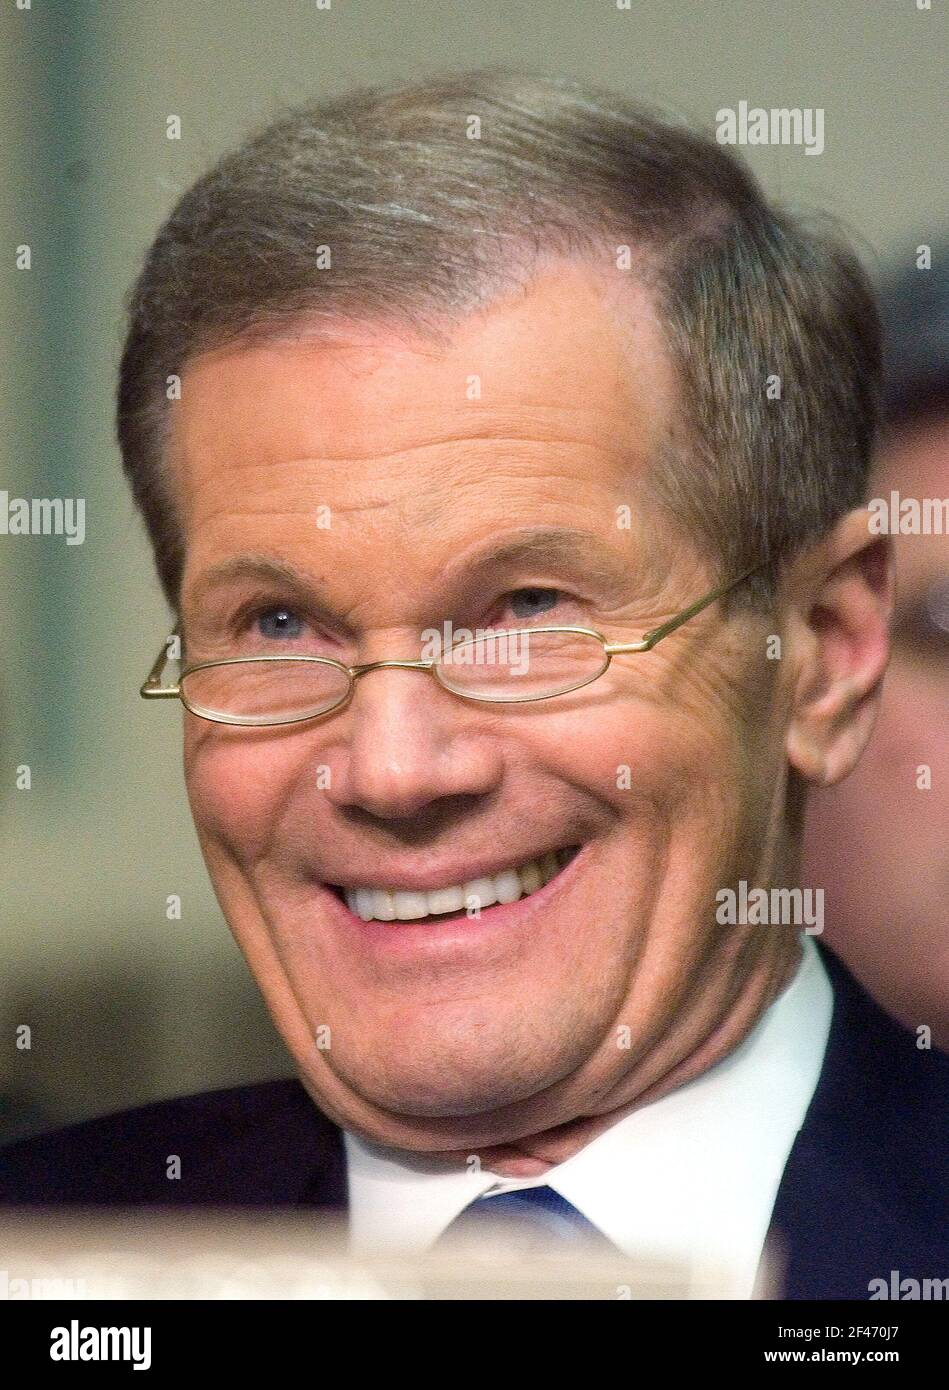 United States Senator Bill Nelson (Democrat of Florida) listens to testimony from United States Secretary of Commerce-designate Carlos Gutierrez on his nomination to replace Don Evans before the United States Senate Committee on Commerce, Science, and Transportation in Washington, D.C. on January 5, 2004. .Credit: Ron Sachs / CNP | usage worldwide Stock Photo